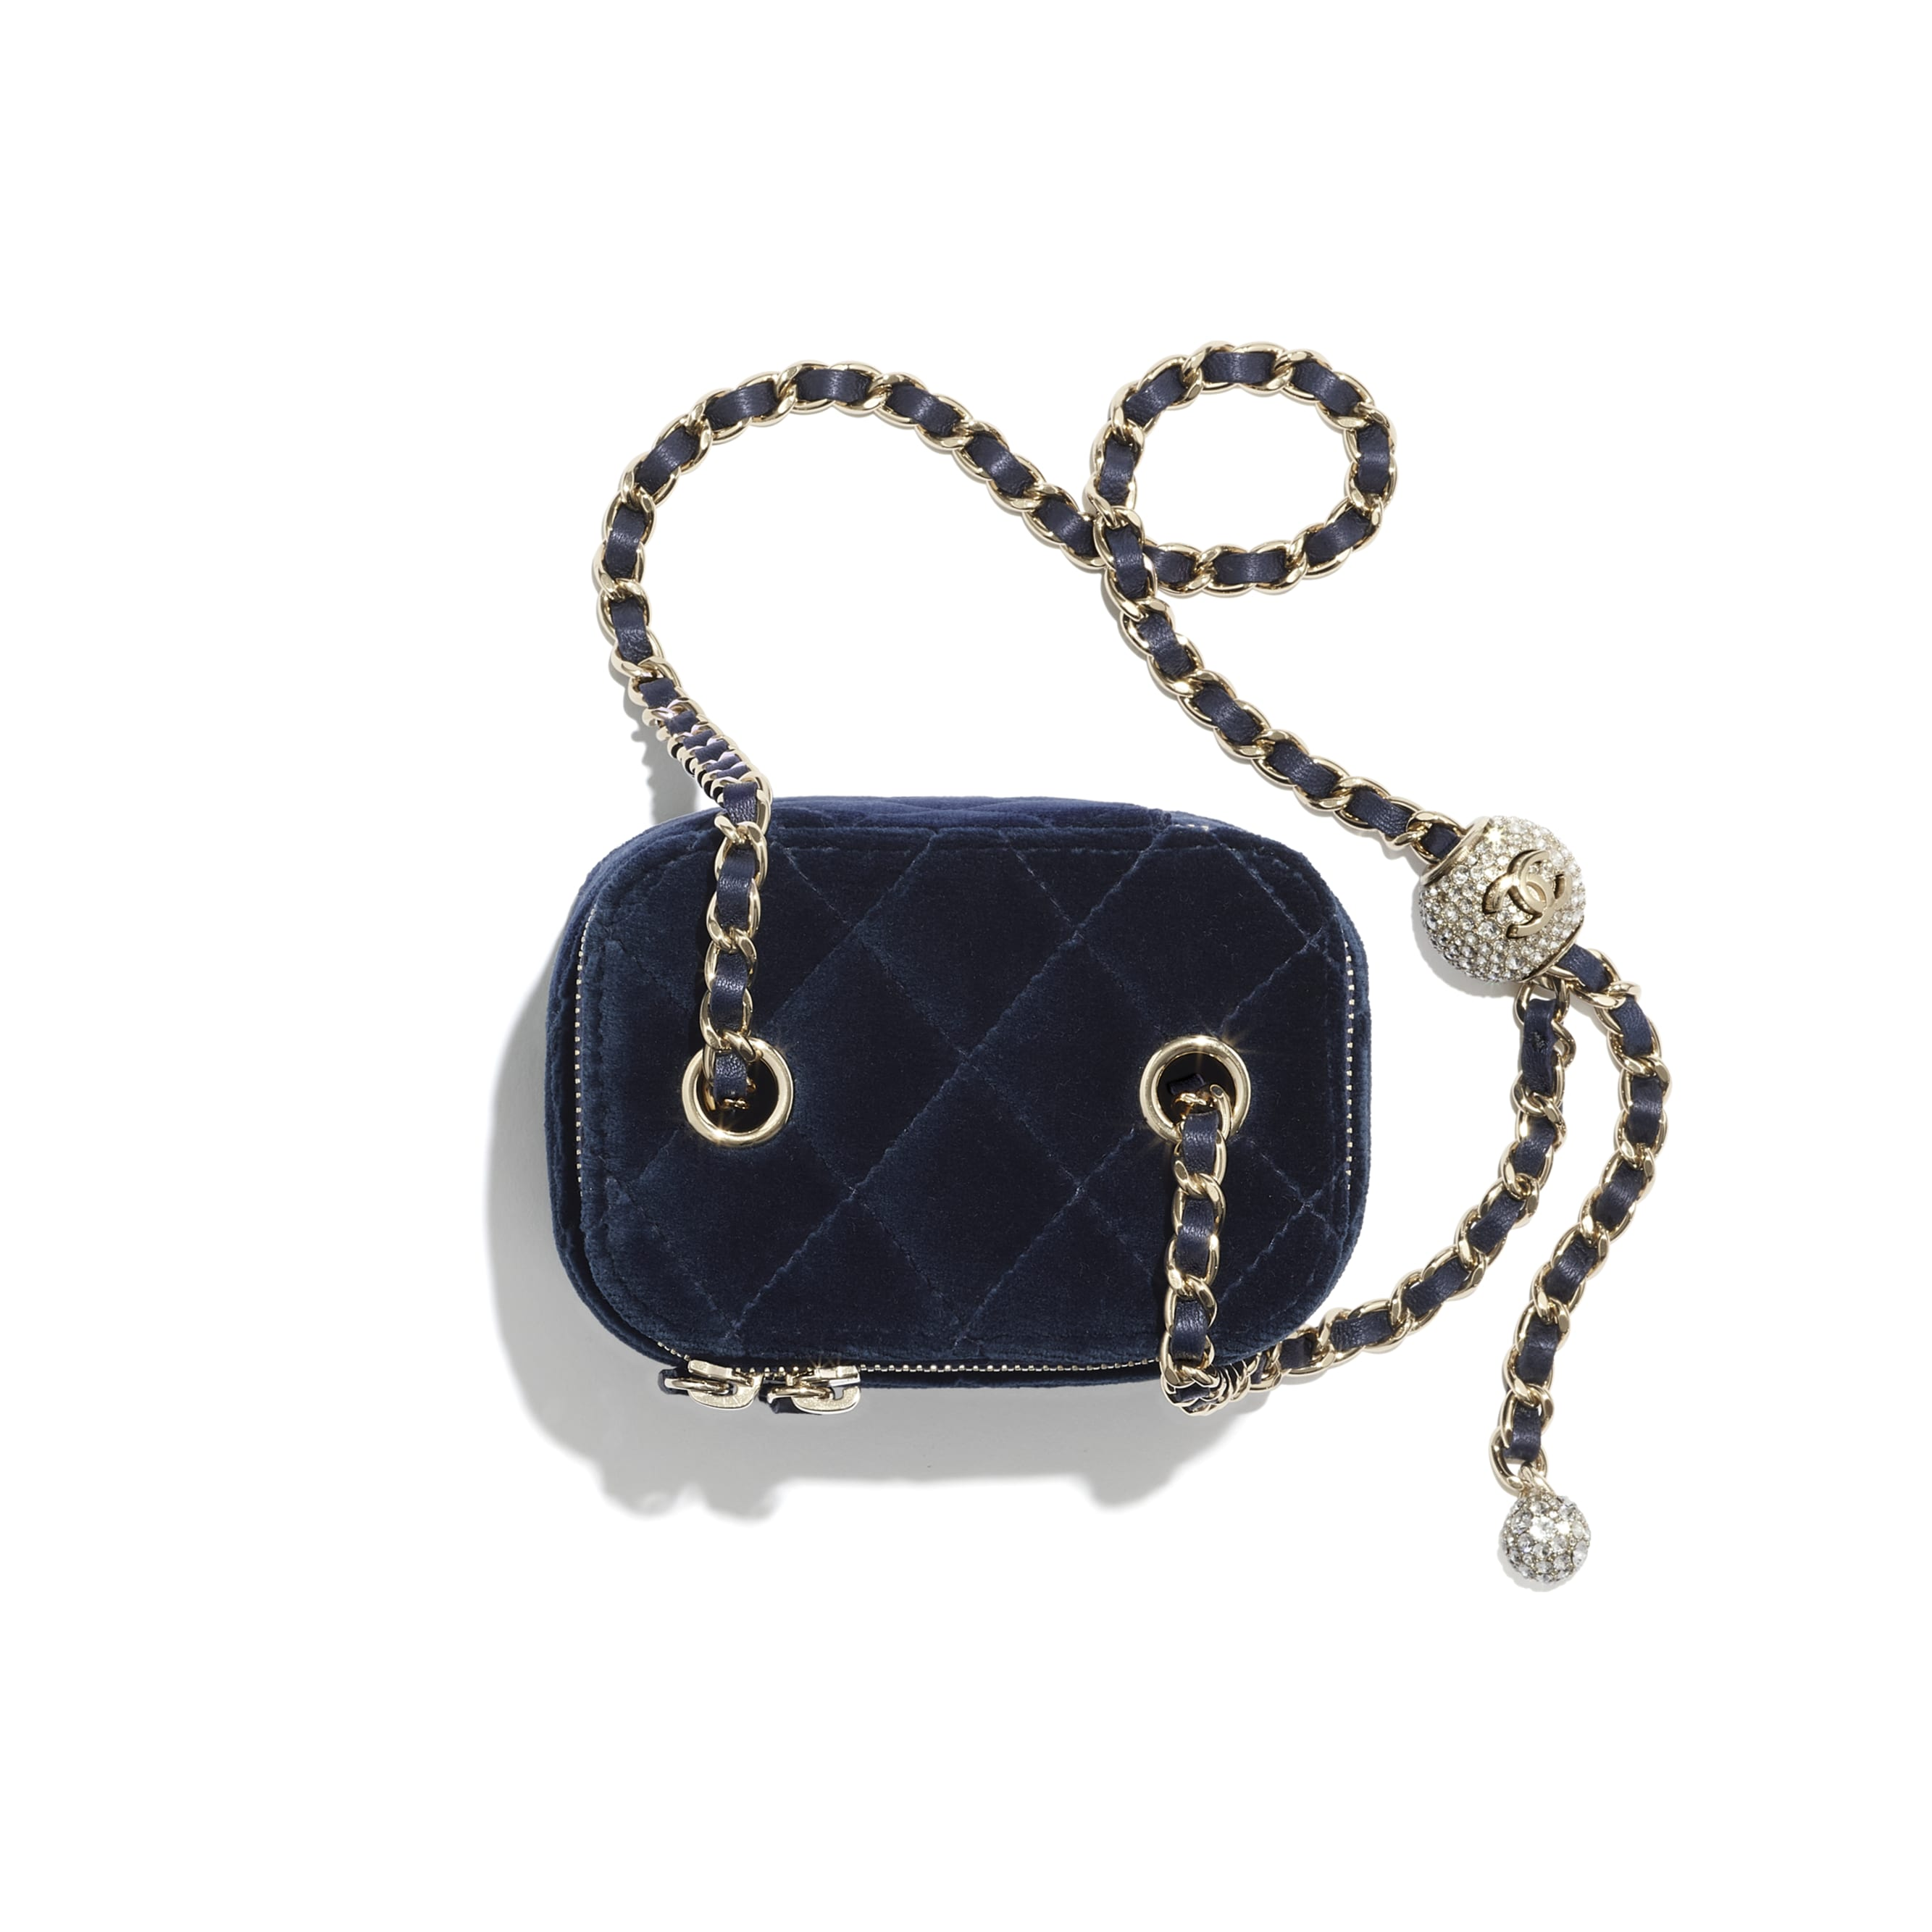 Small Classic Box with Chain - Navy Blue - Velvet, Diamanté & Silver-Tone Metal - CHANEL - Alternative view - see standard sized version